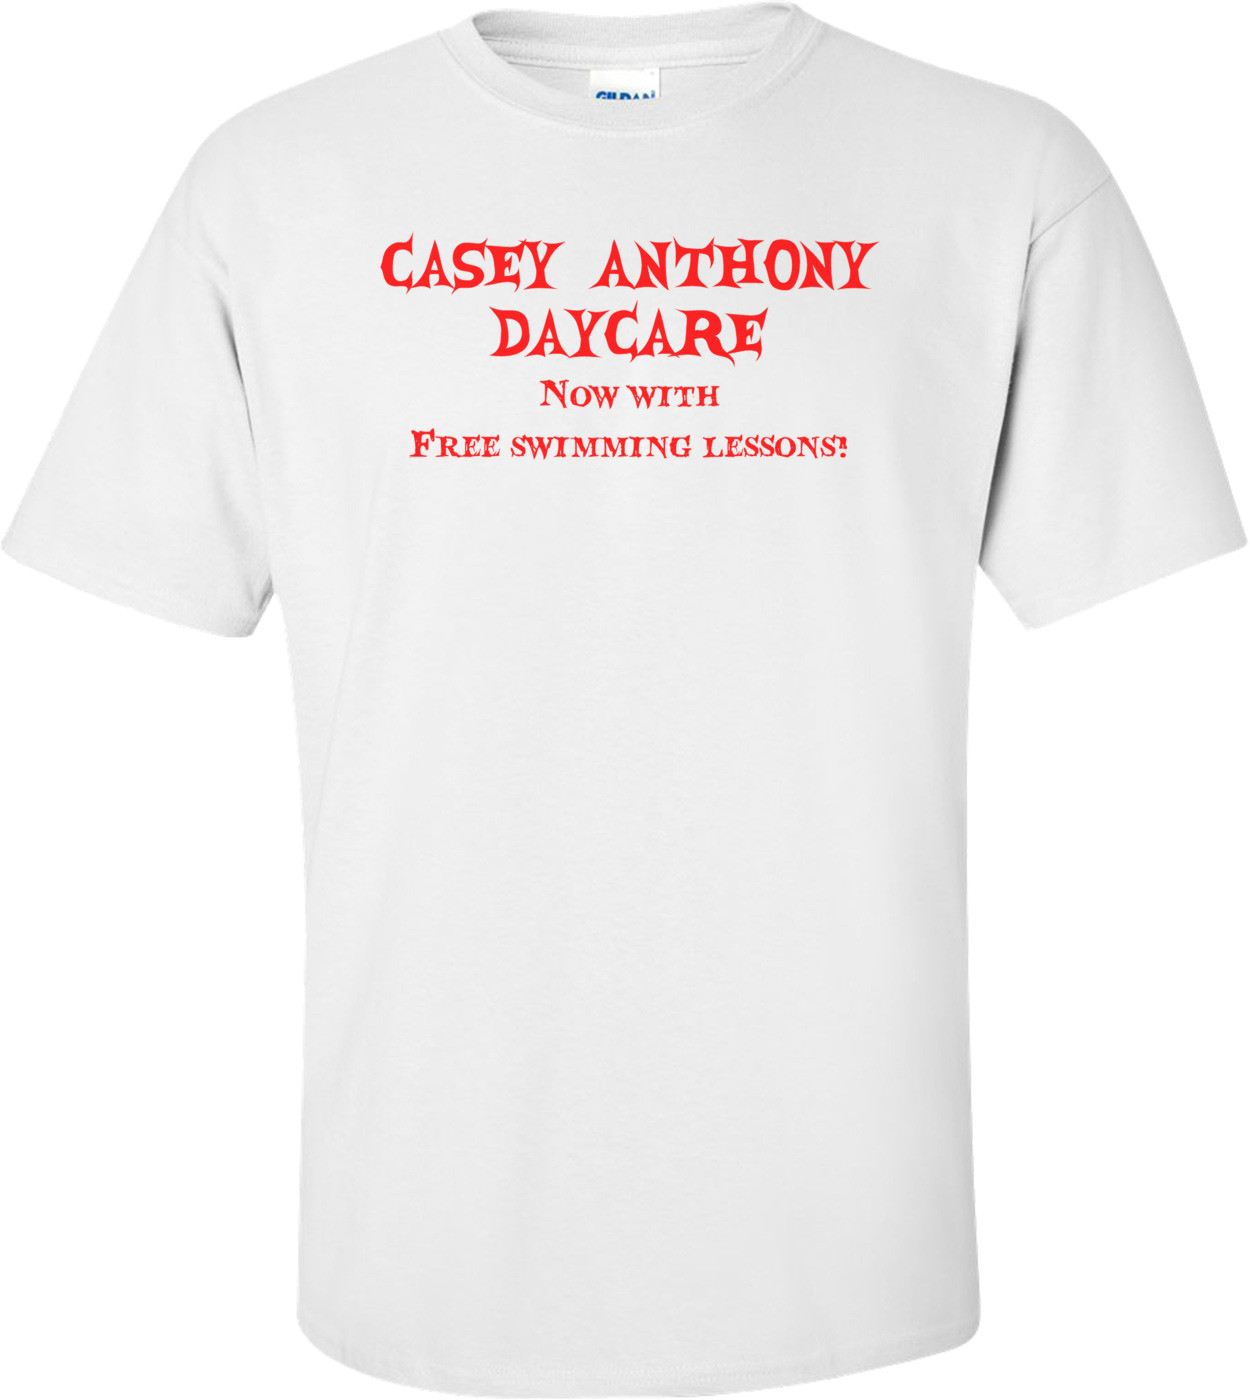 Casey Anthony Daycare - Funny Shirt